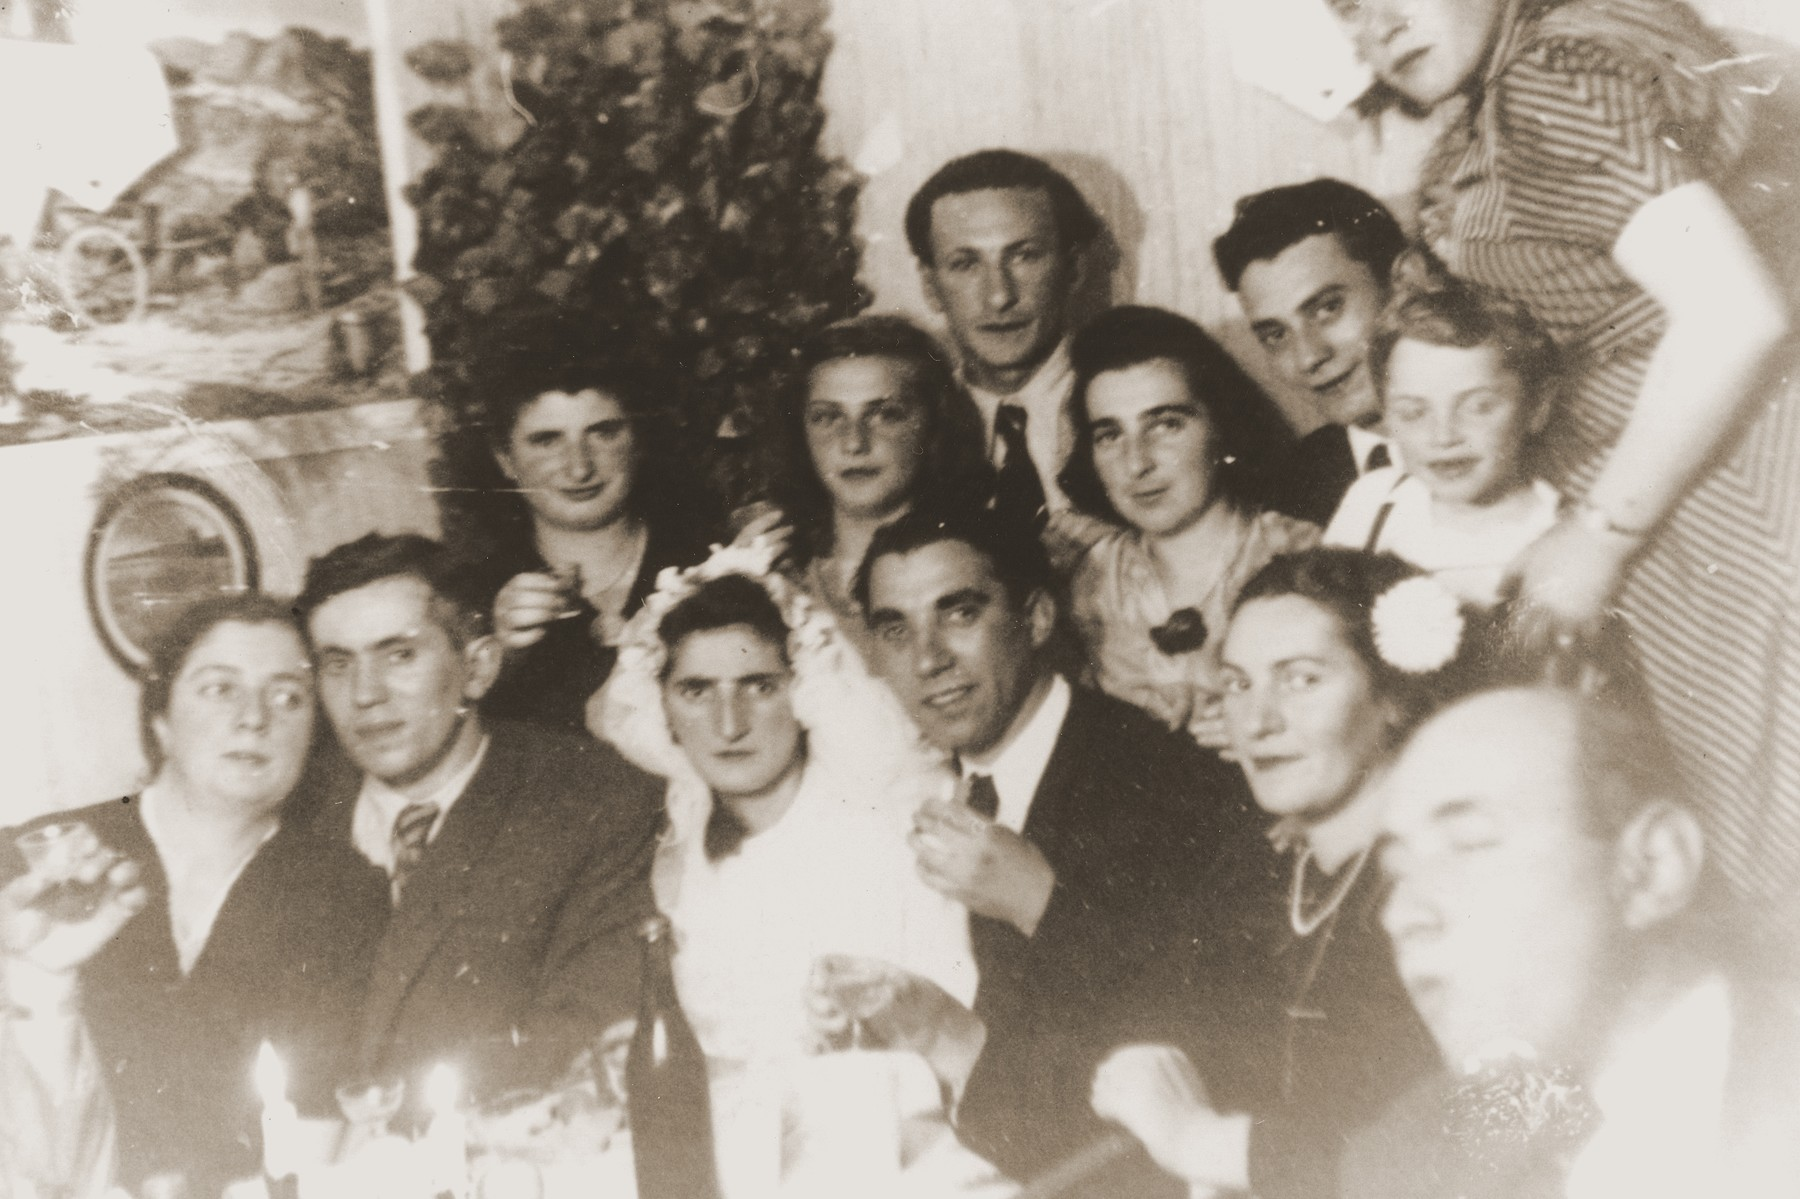 Friends and family pose with the bride and groom at a wedding celebration in the Bergen-Belsen displaced persons camp.  Pictured are the bride and groom Manya (Goldblum) and David Marmor